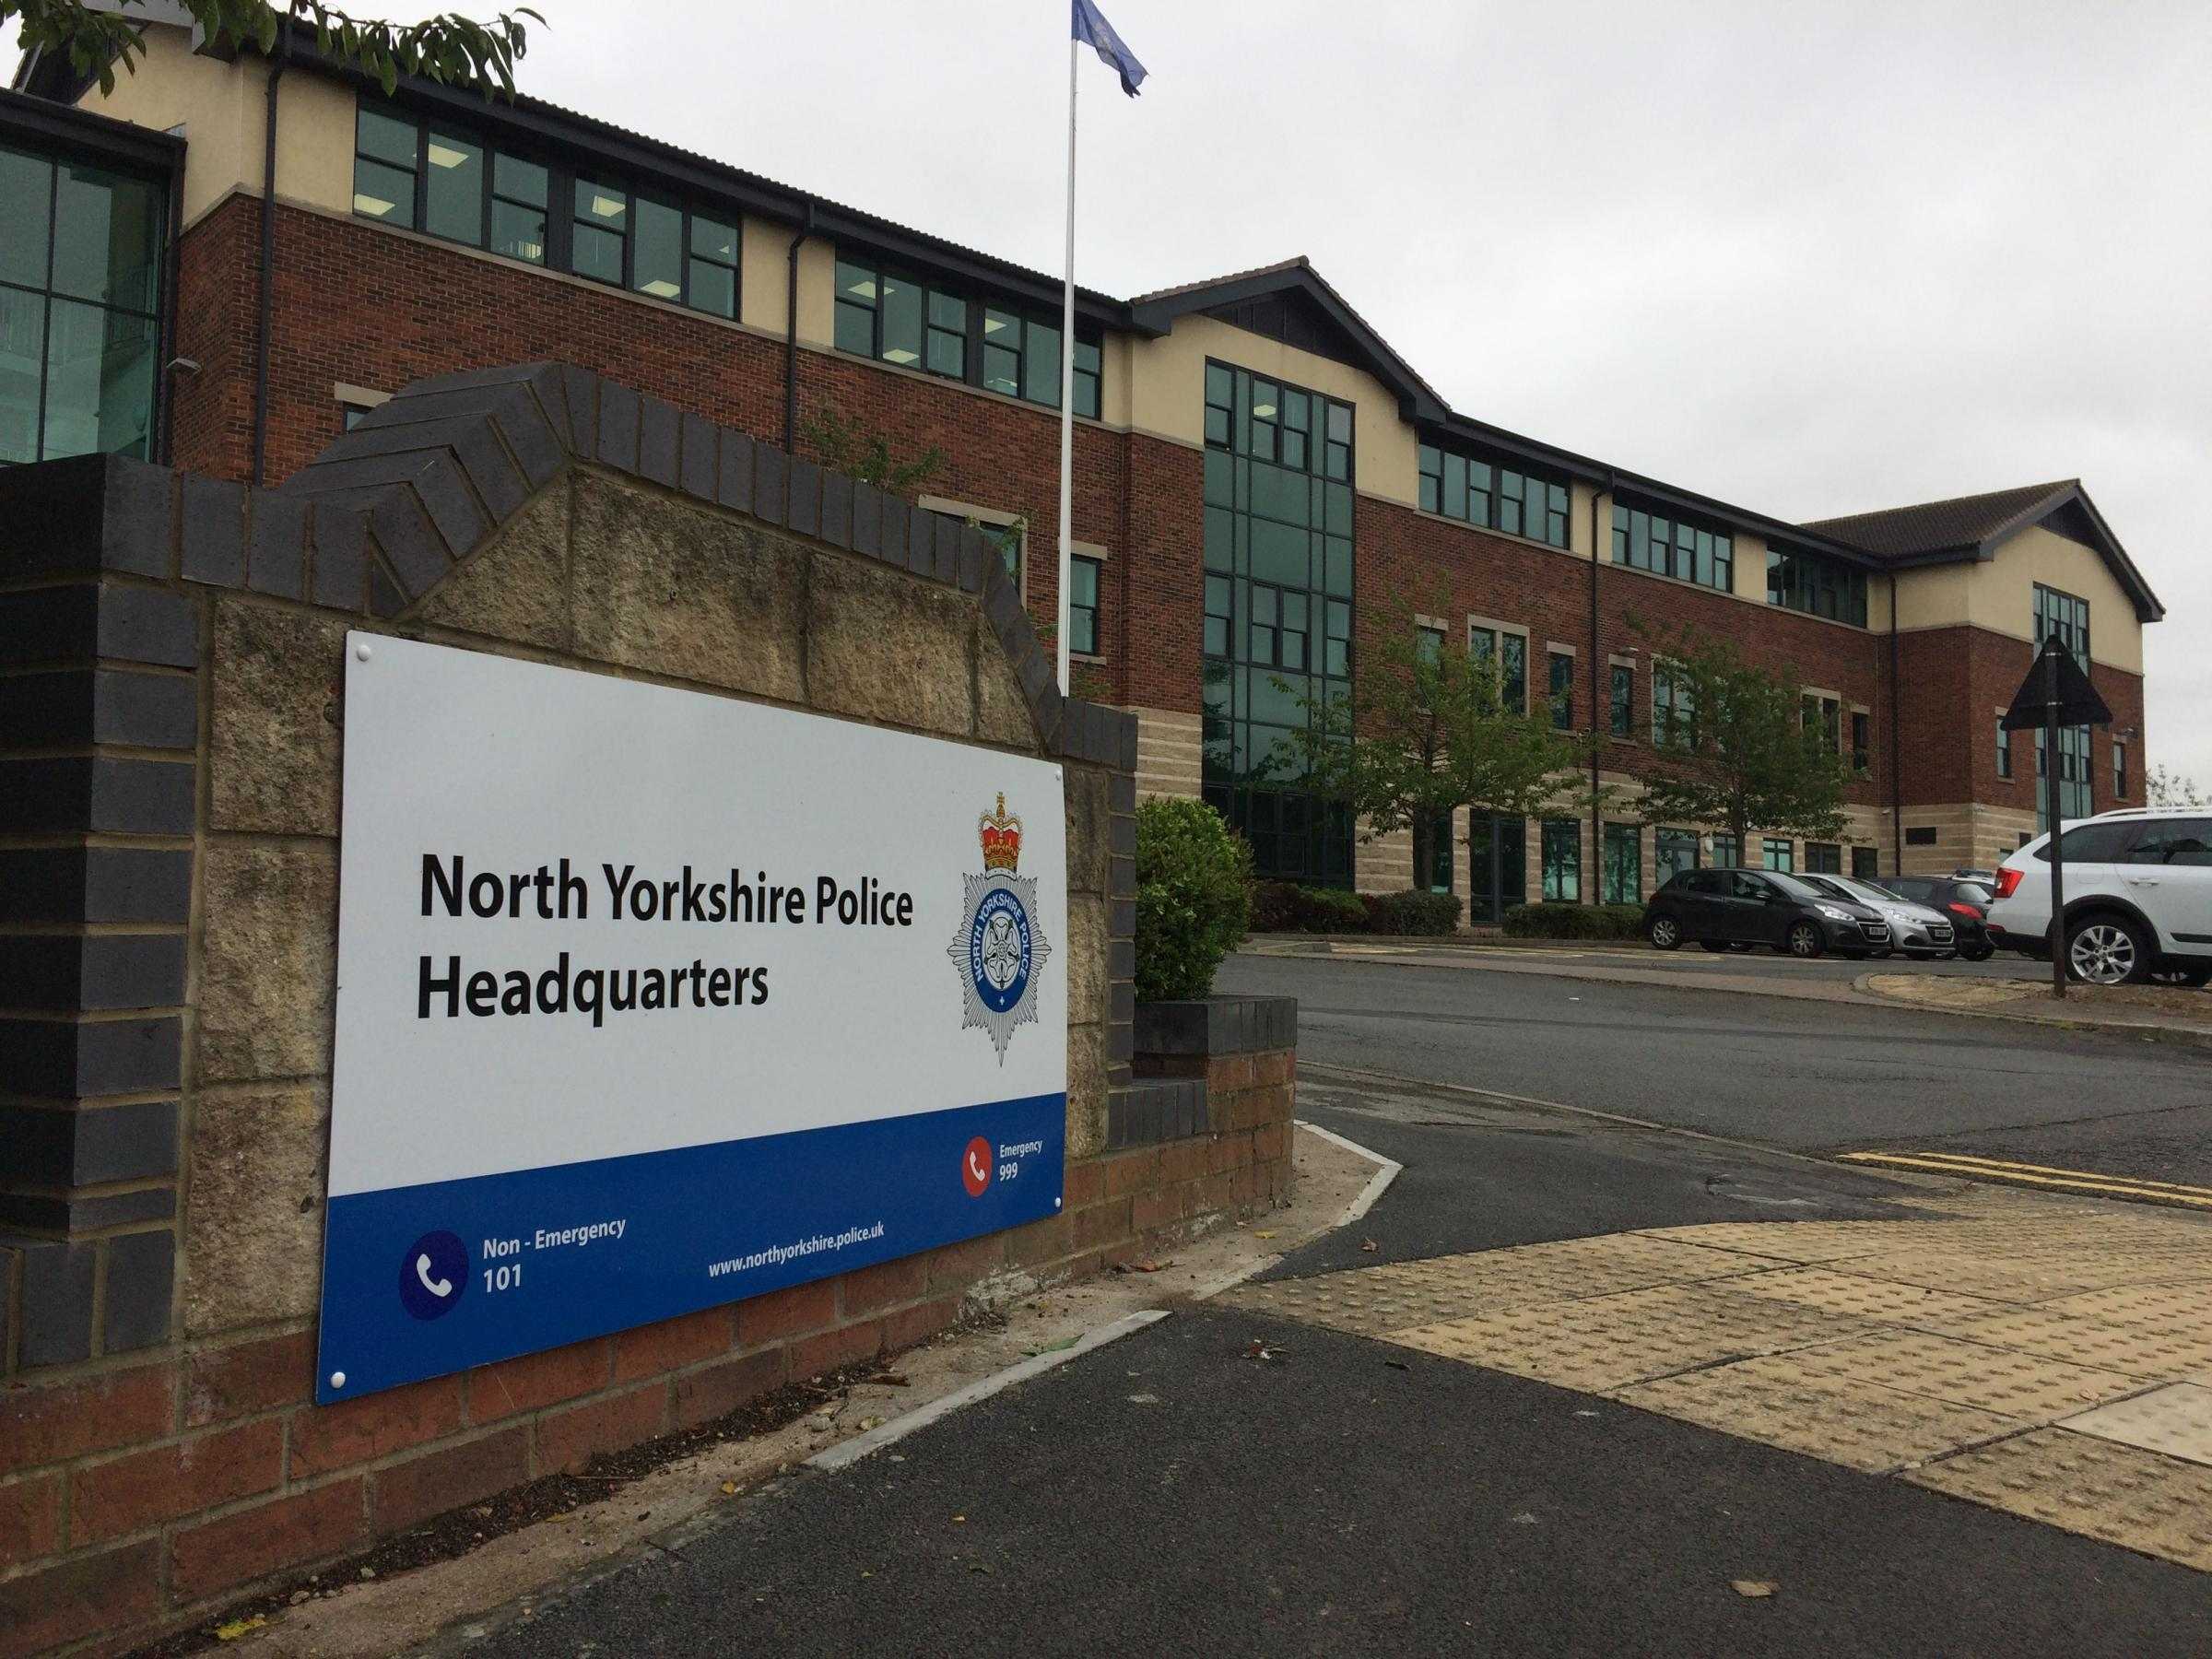 North Yorkshire Police spend more than £250,000 on car hire